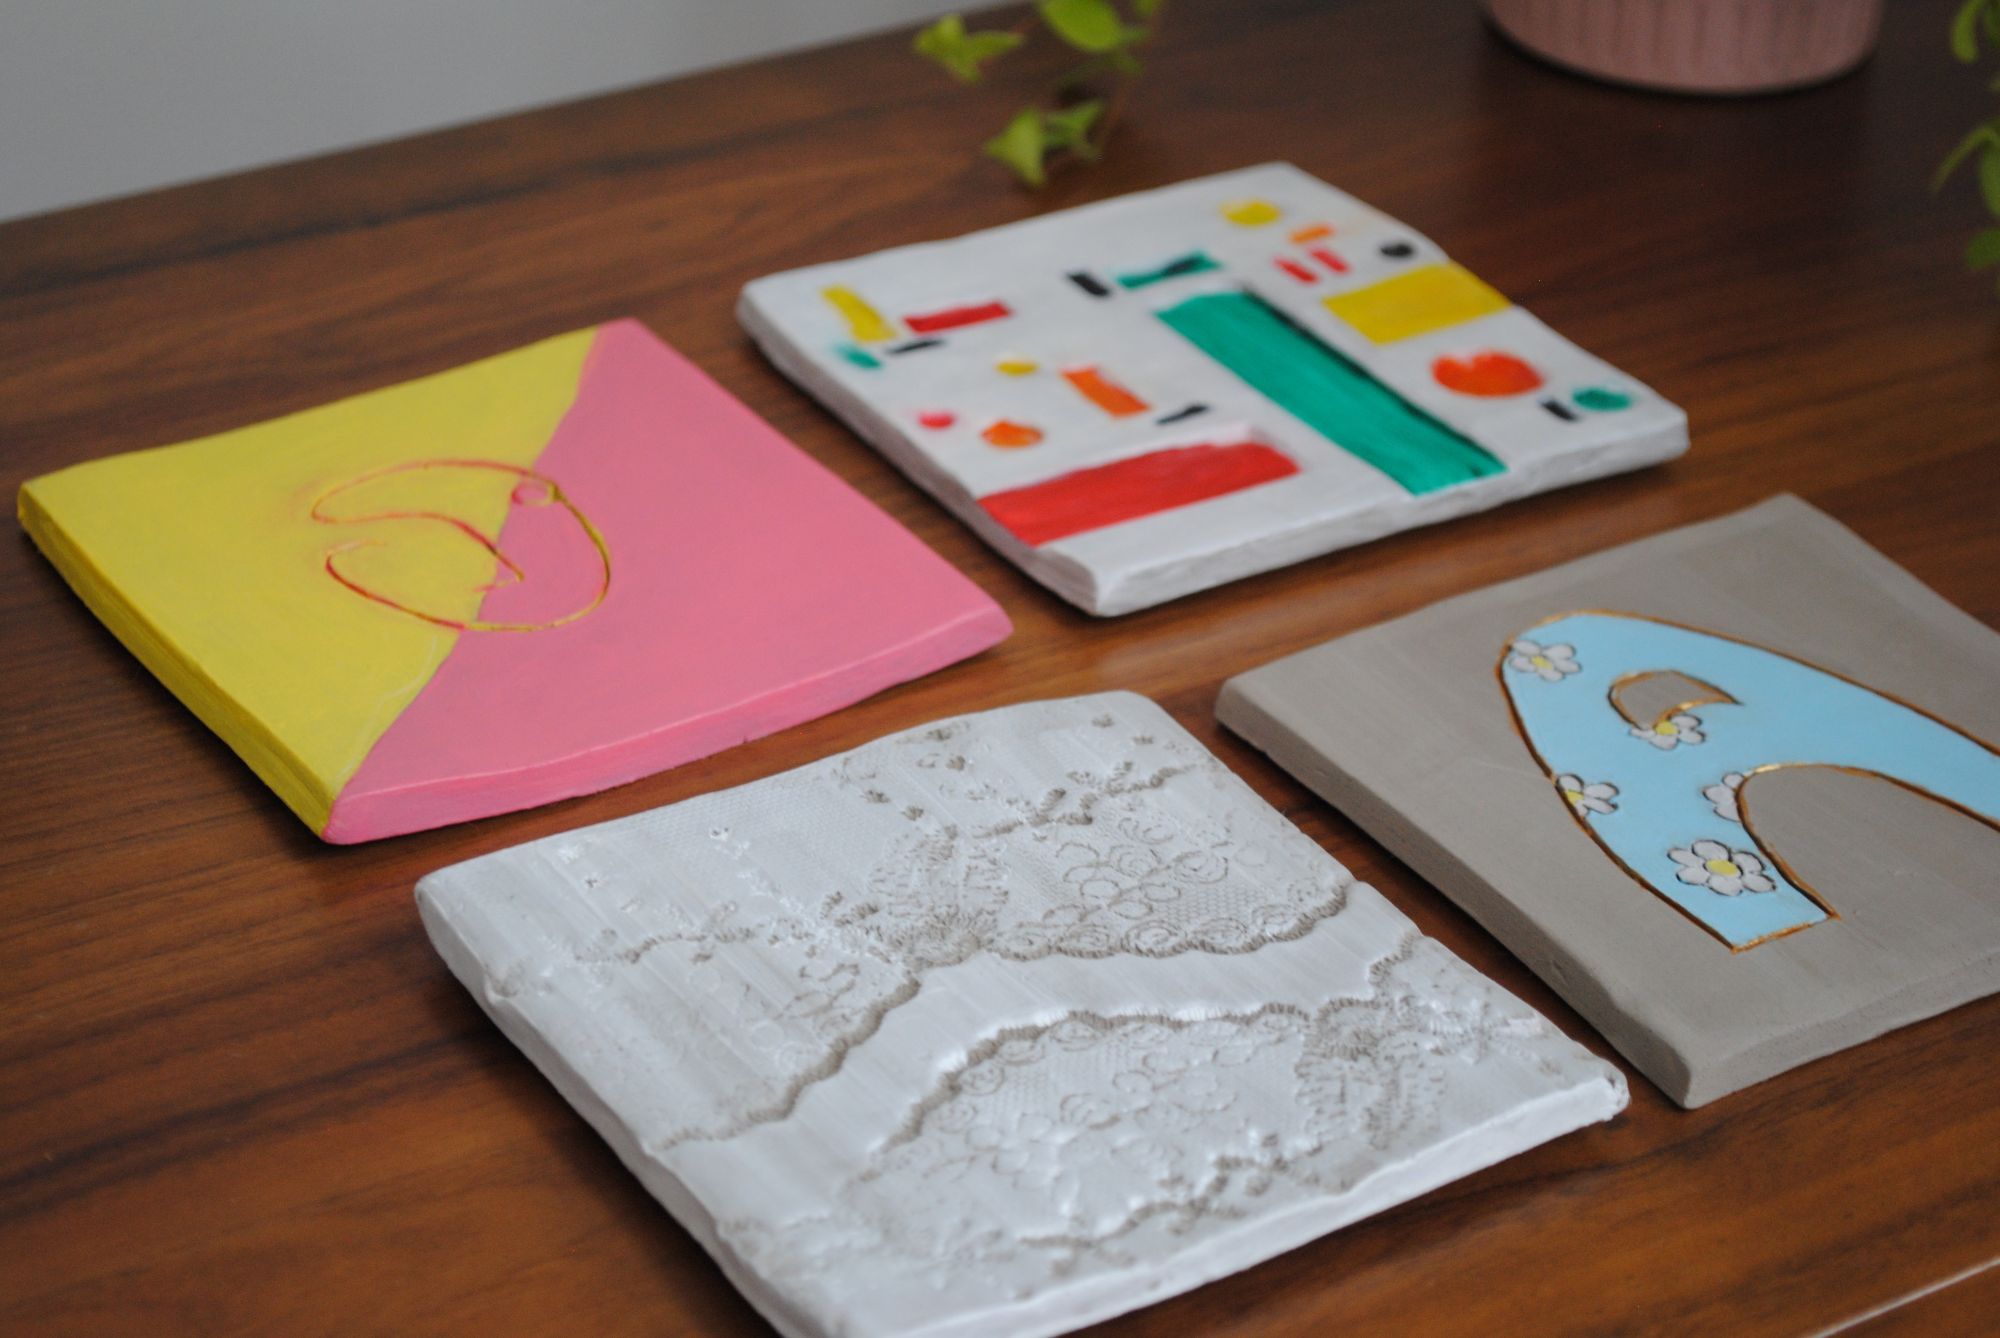 DIY home pottery coasters making kit.